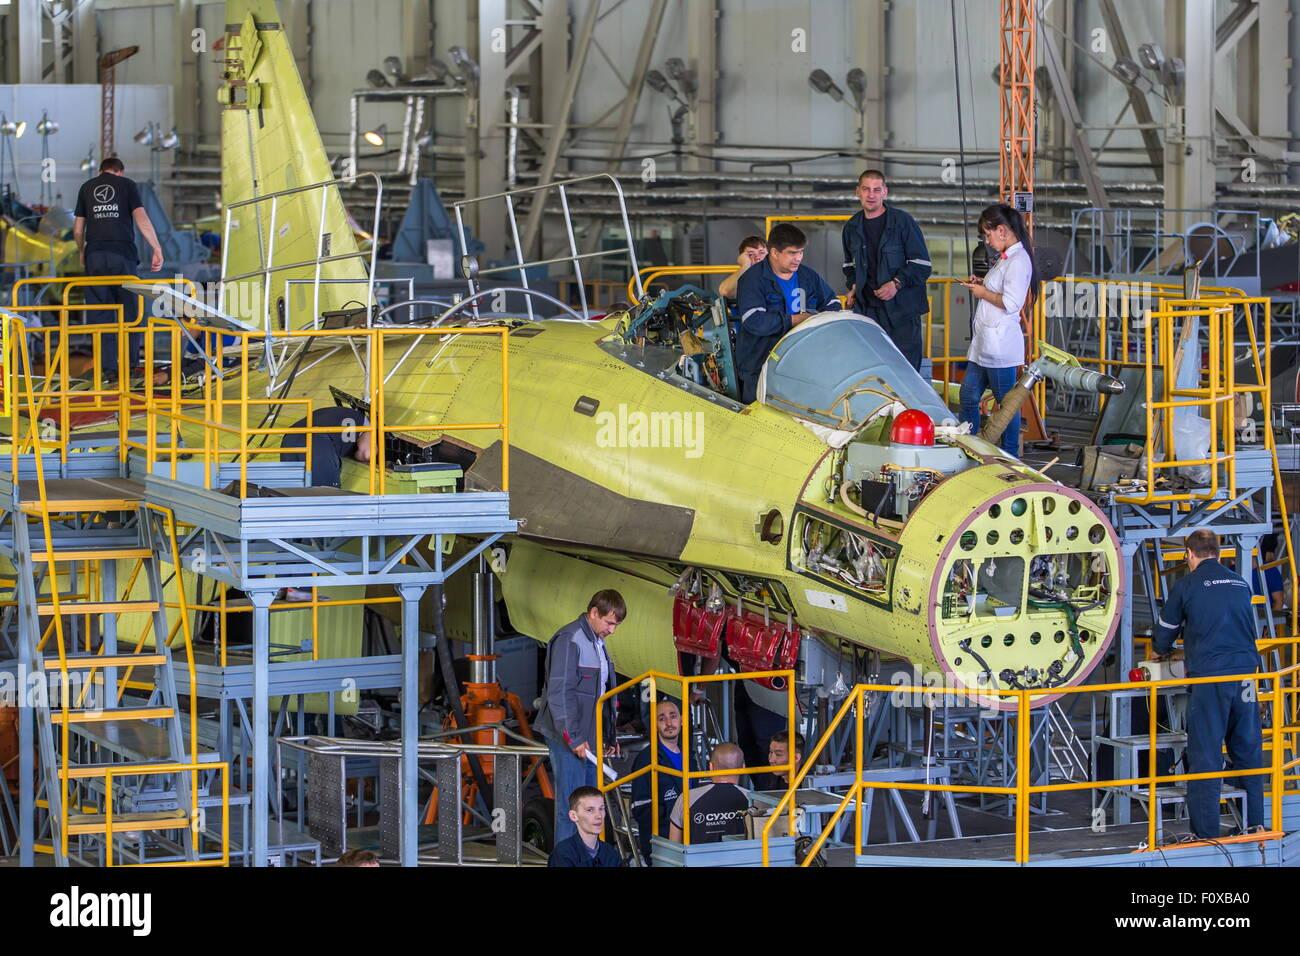 Komsomolsk On Amur, Russia. 16th July, 2015. A Sukhoi-35 fighter being assembled in a workshop at the Gagarin Aircraft Stock Photo